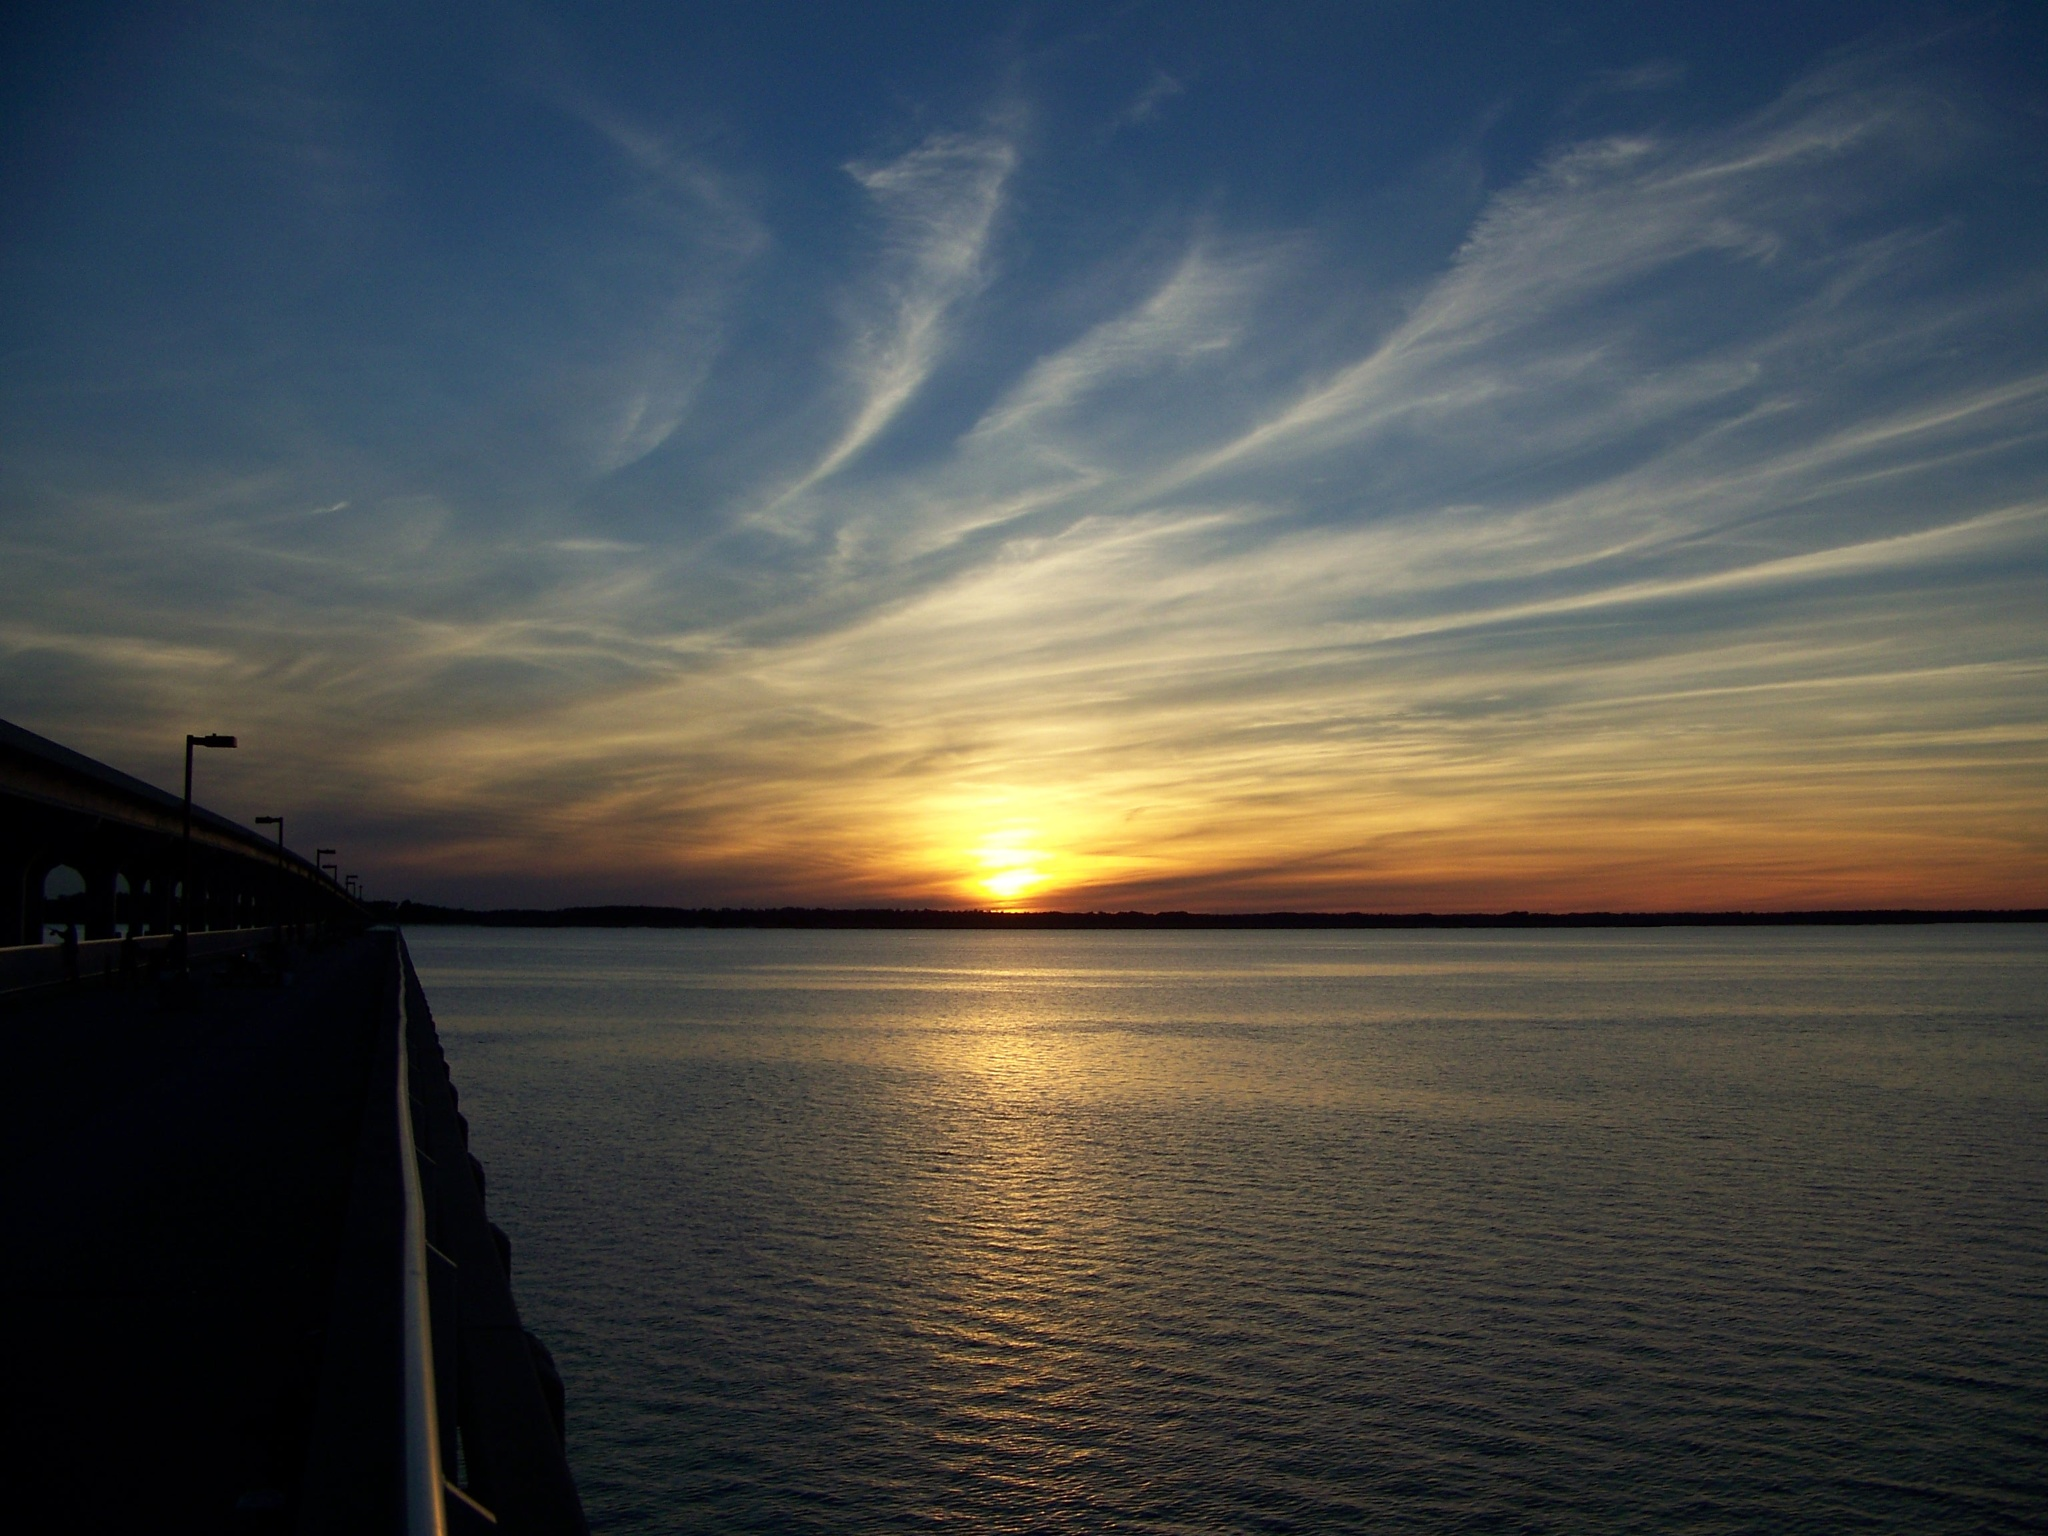 Sunset View from Broad River Pier by Jennifer Prinz